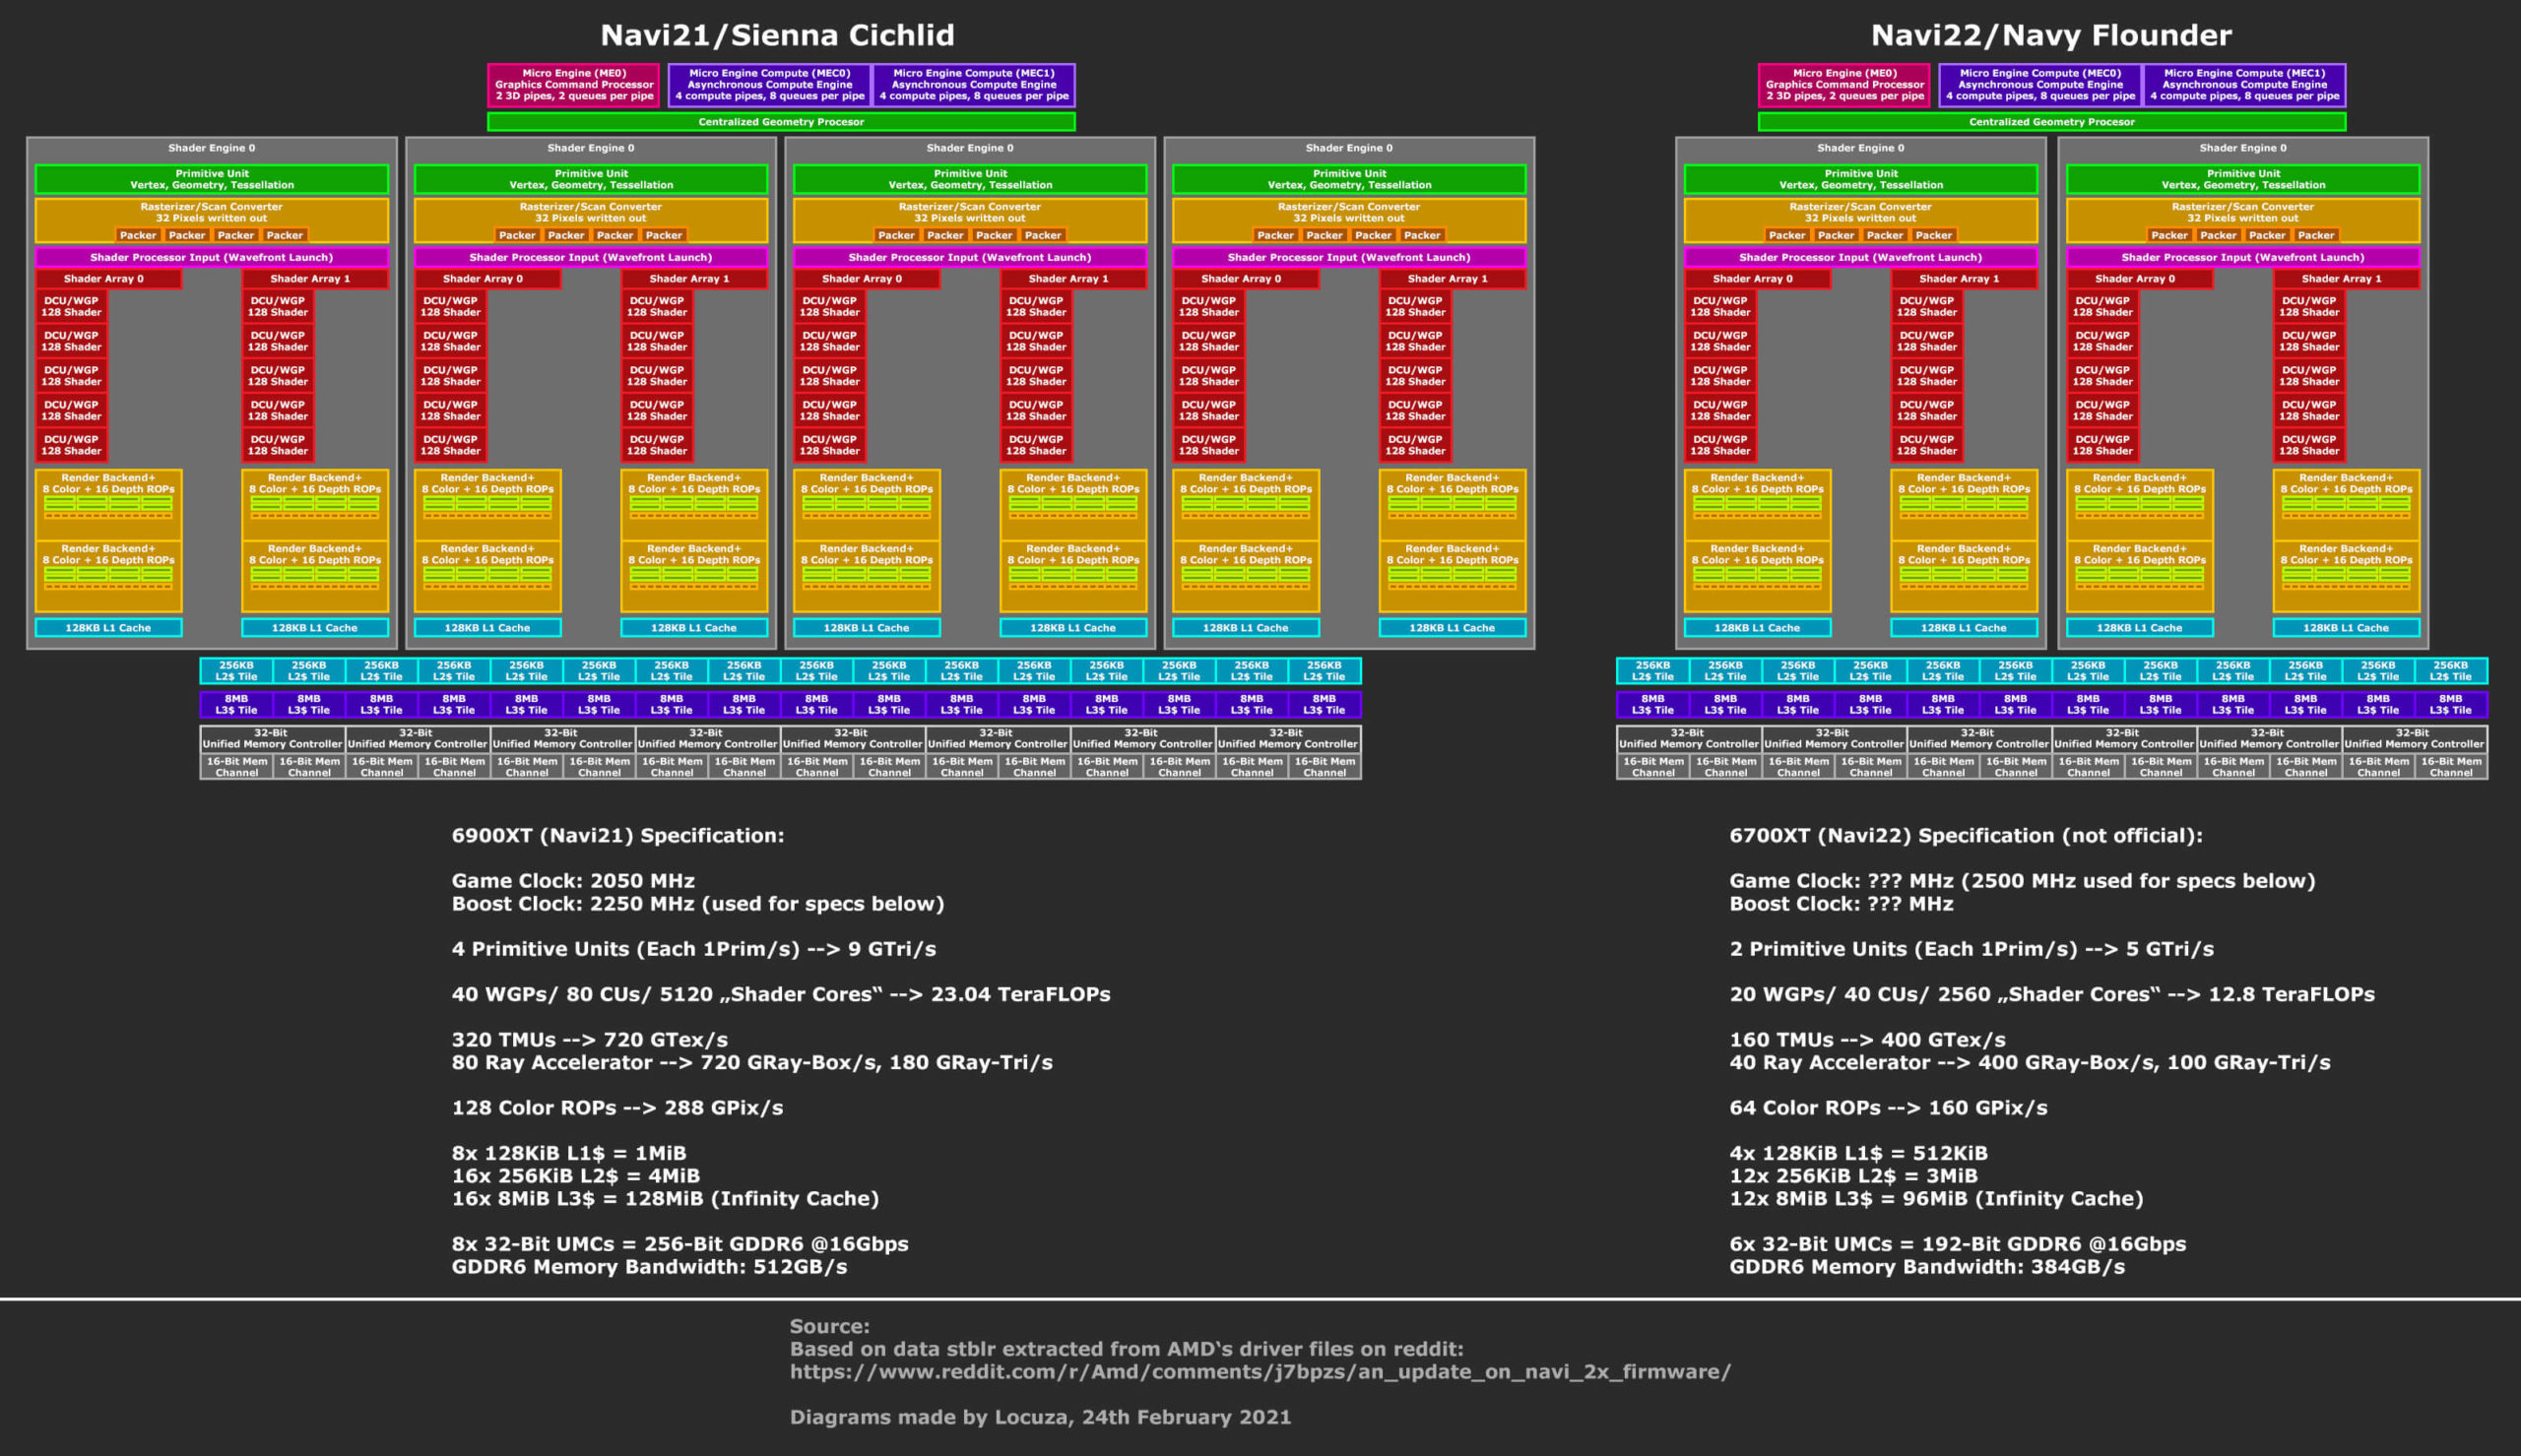 AMD Radeon RX 6700 XT Specs and Block Diagrams Detailed